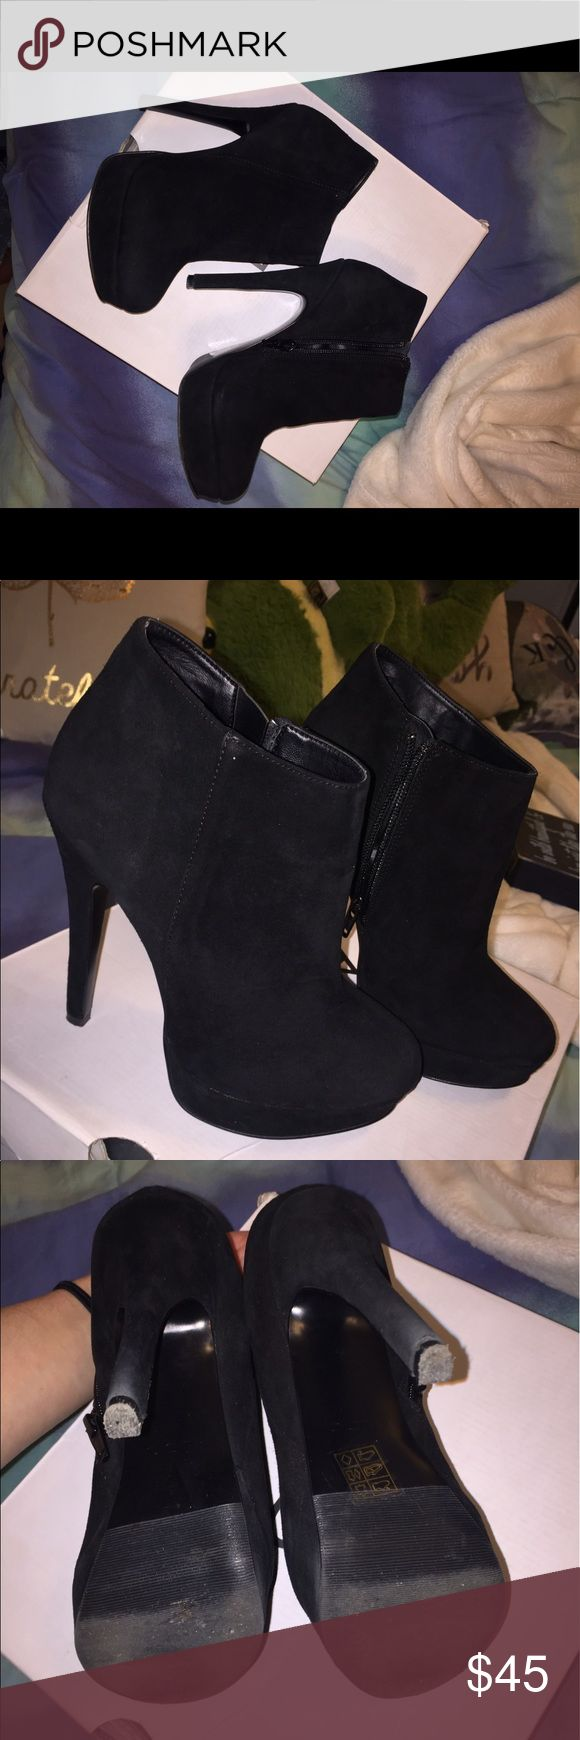 Aldo Black Suede boots Aldo Black high heel booties, worn a few times Aldo Shoes Ankle Boots & Booties